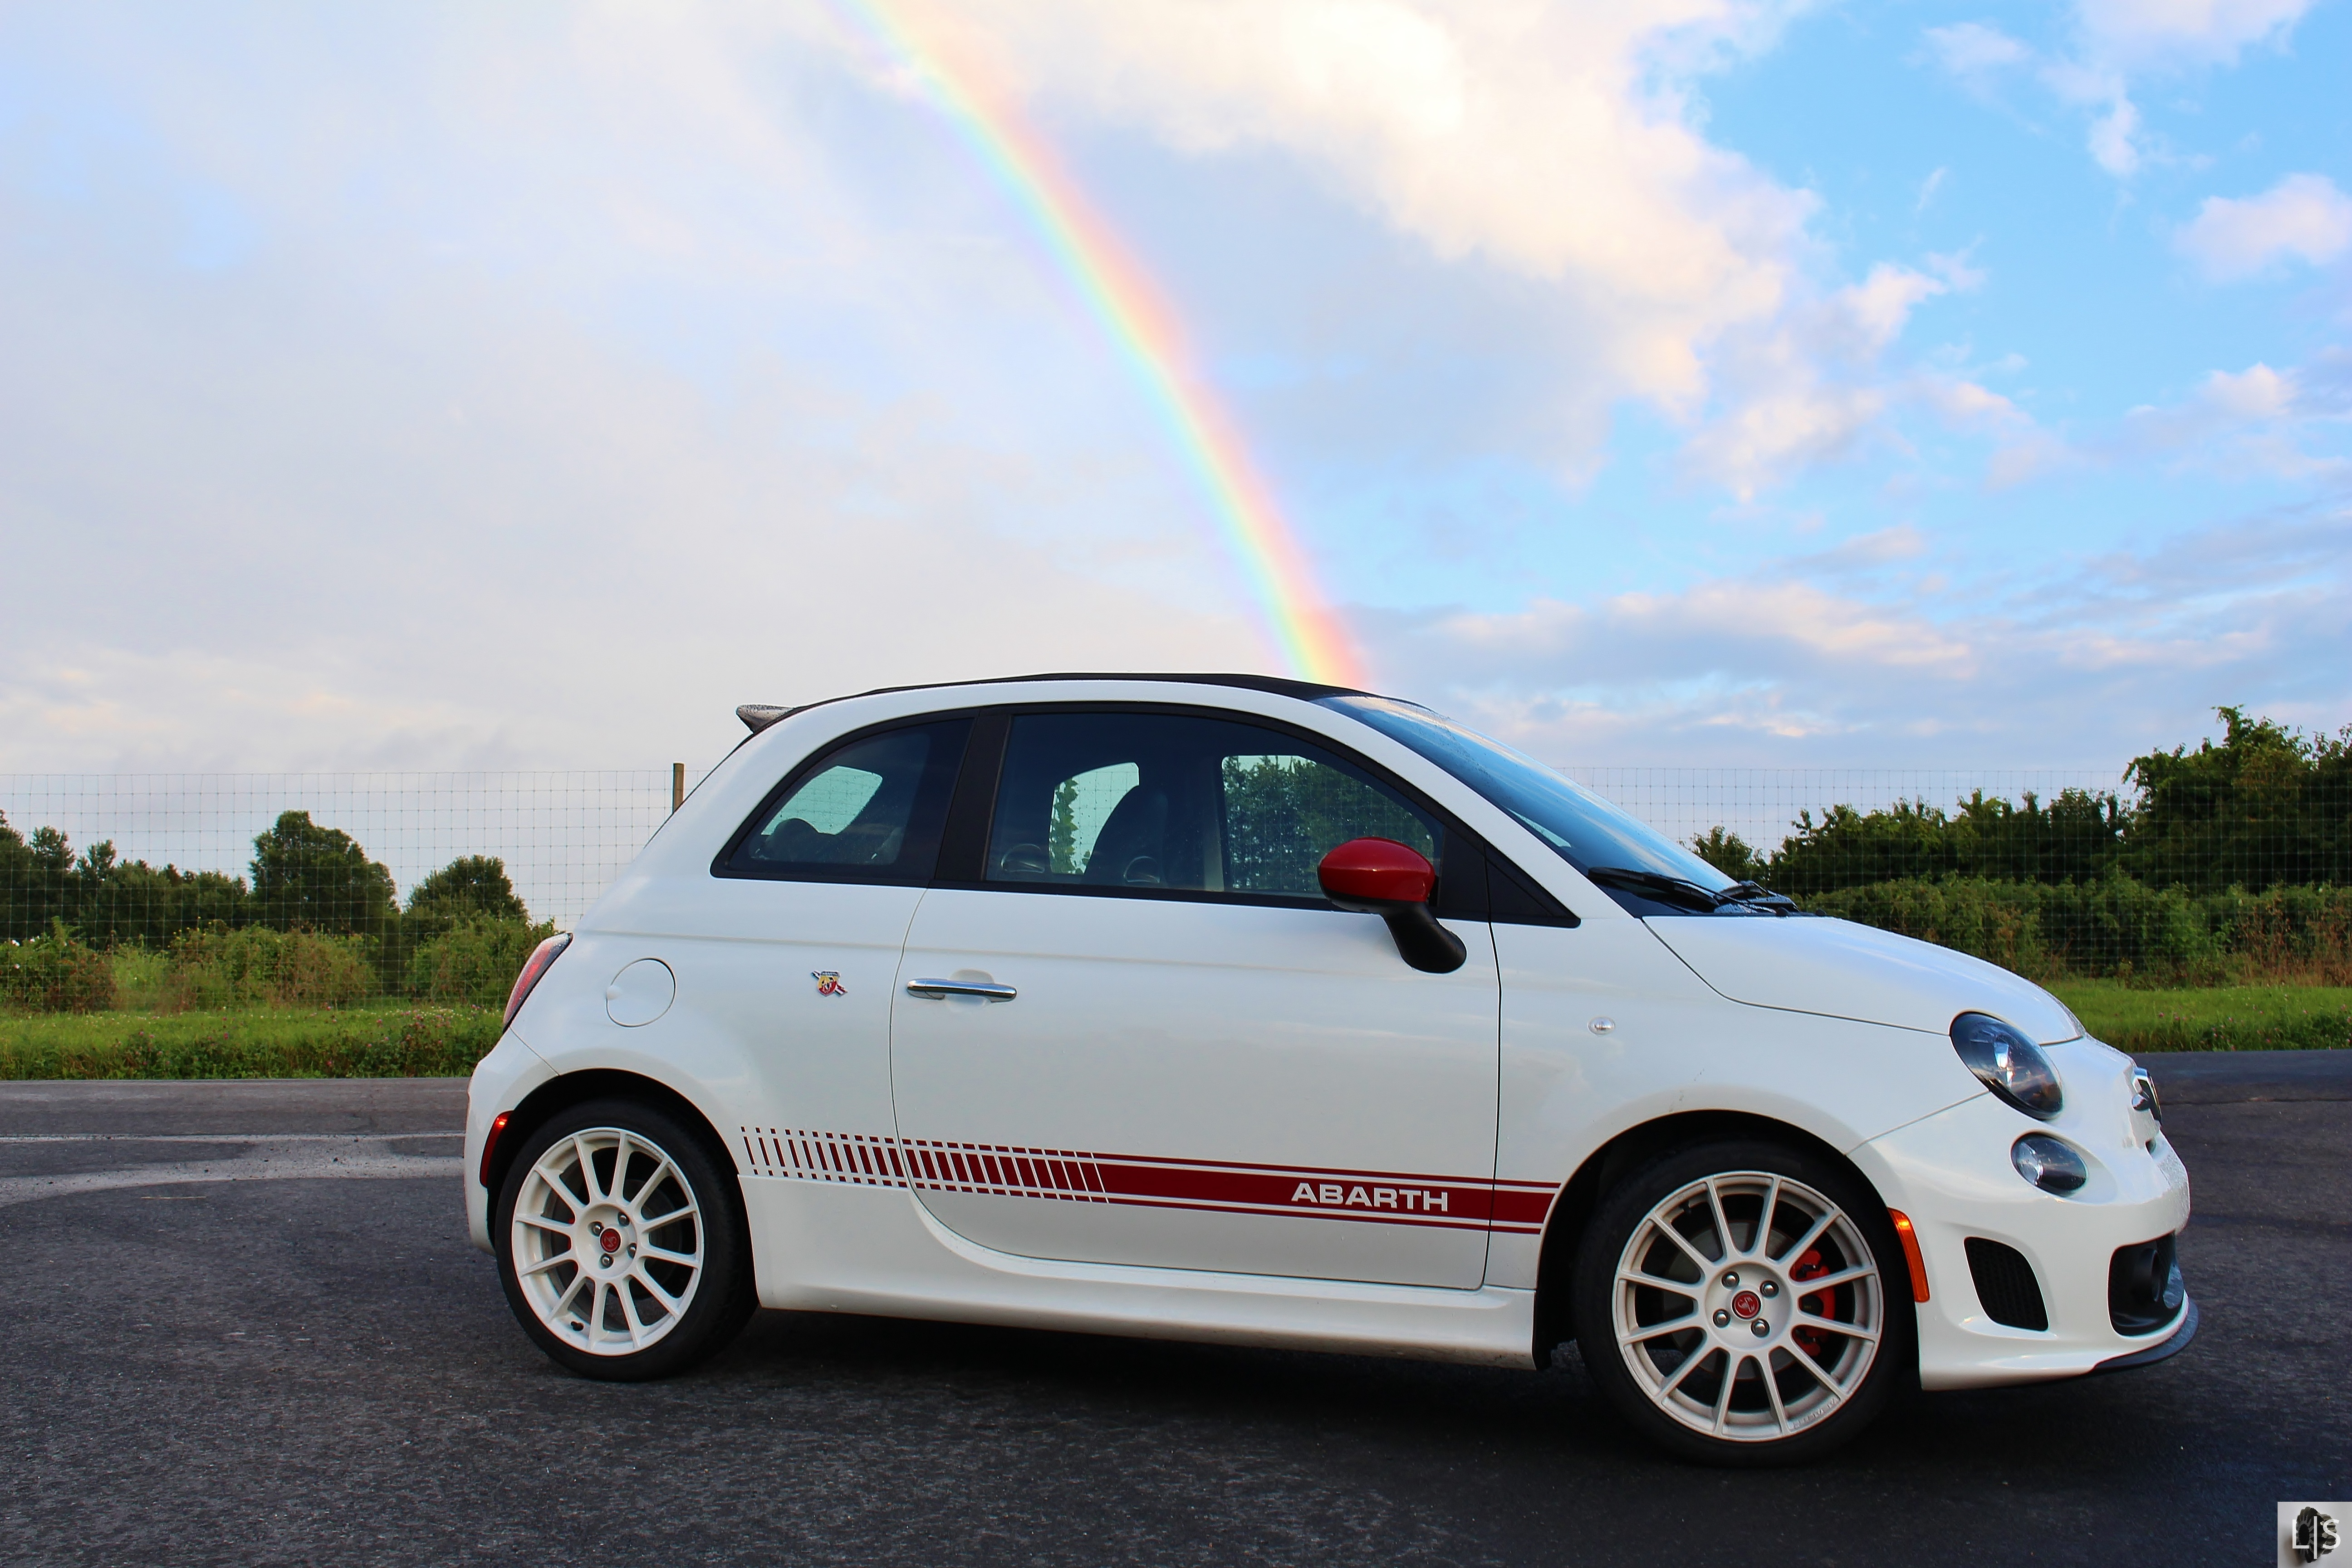 Rude: 2014 Fiat 500 Abarth Cabrio – Limited Slip Blog